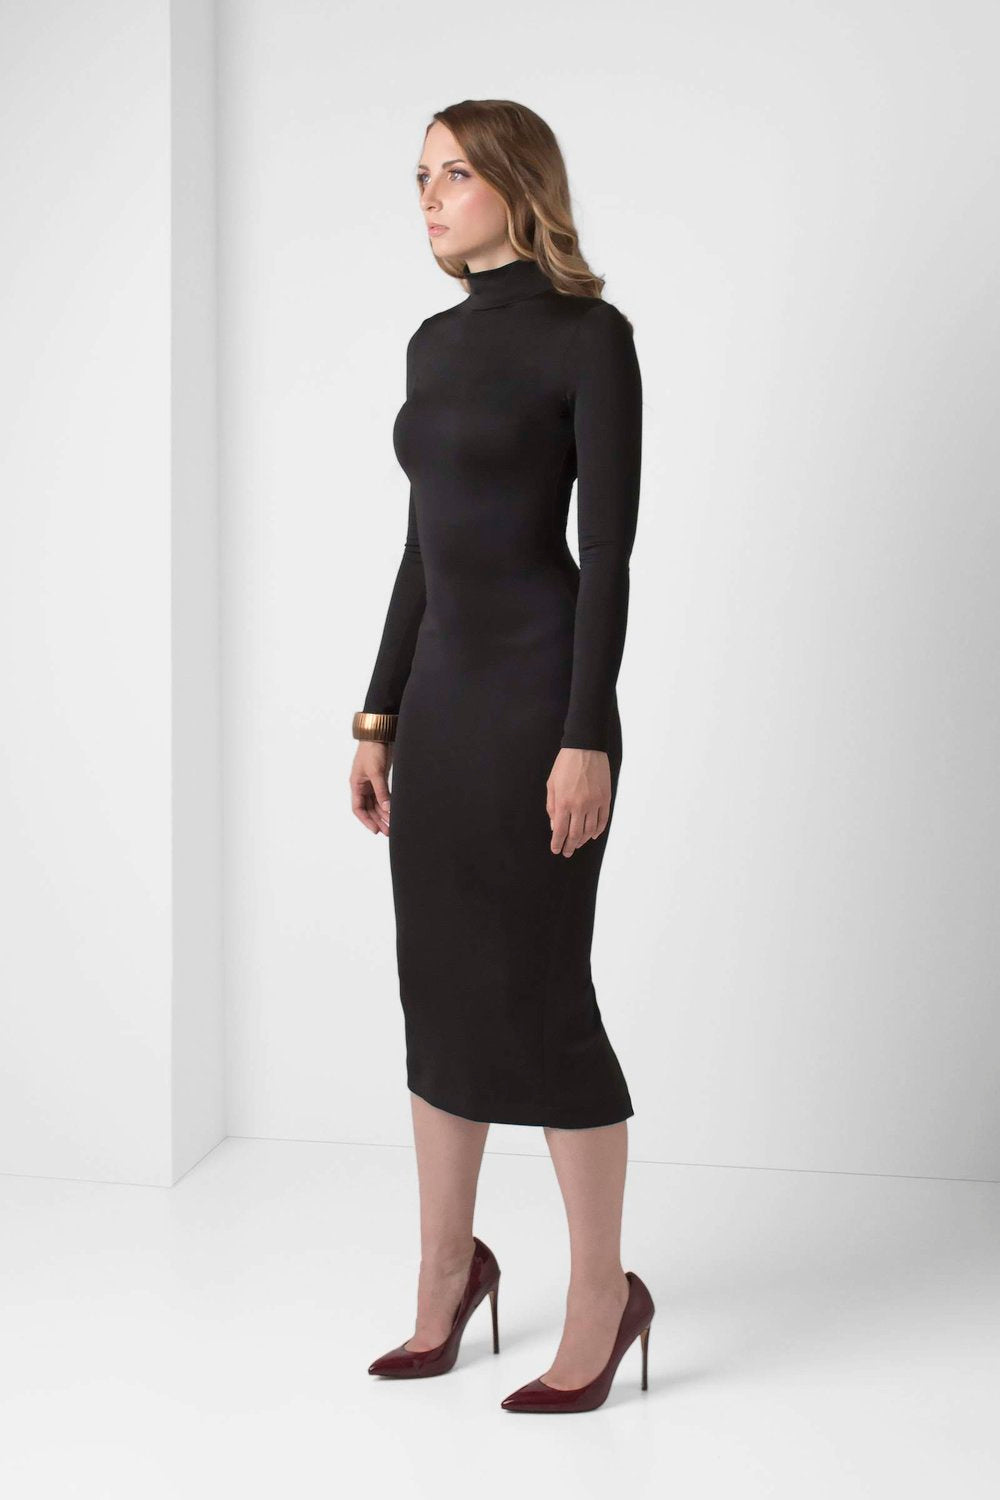 Black Long Sleeve BodyCon Pencil Dress - pacorogiene